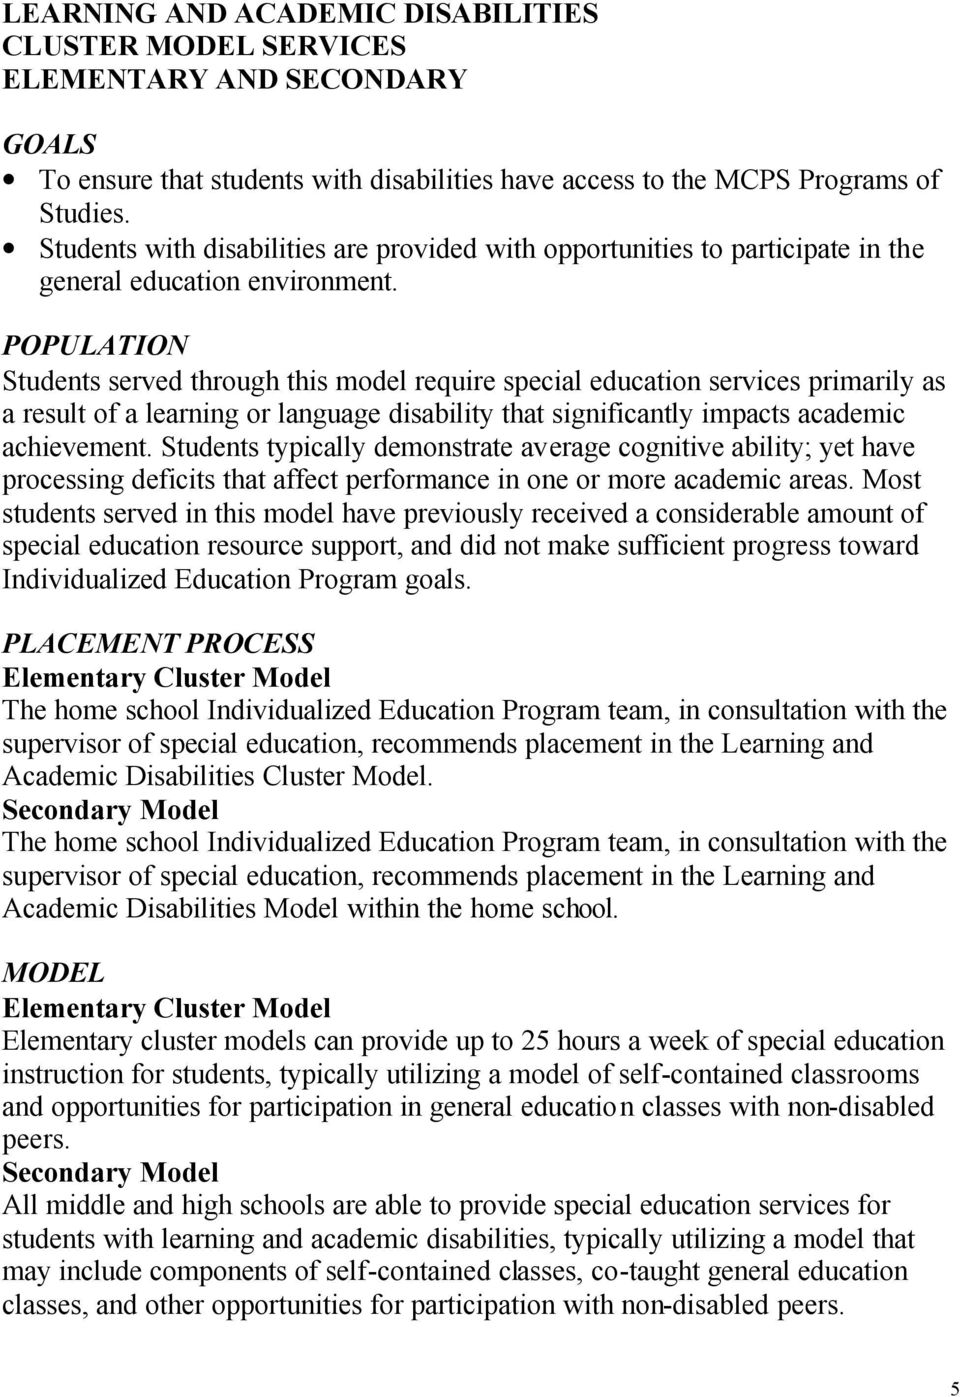 Students served through this model require special education services primarily as a result of a learning or language disability that significantly impacts academic achievement.